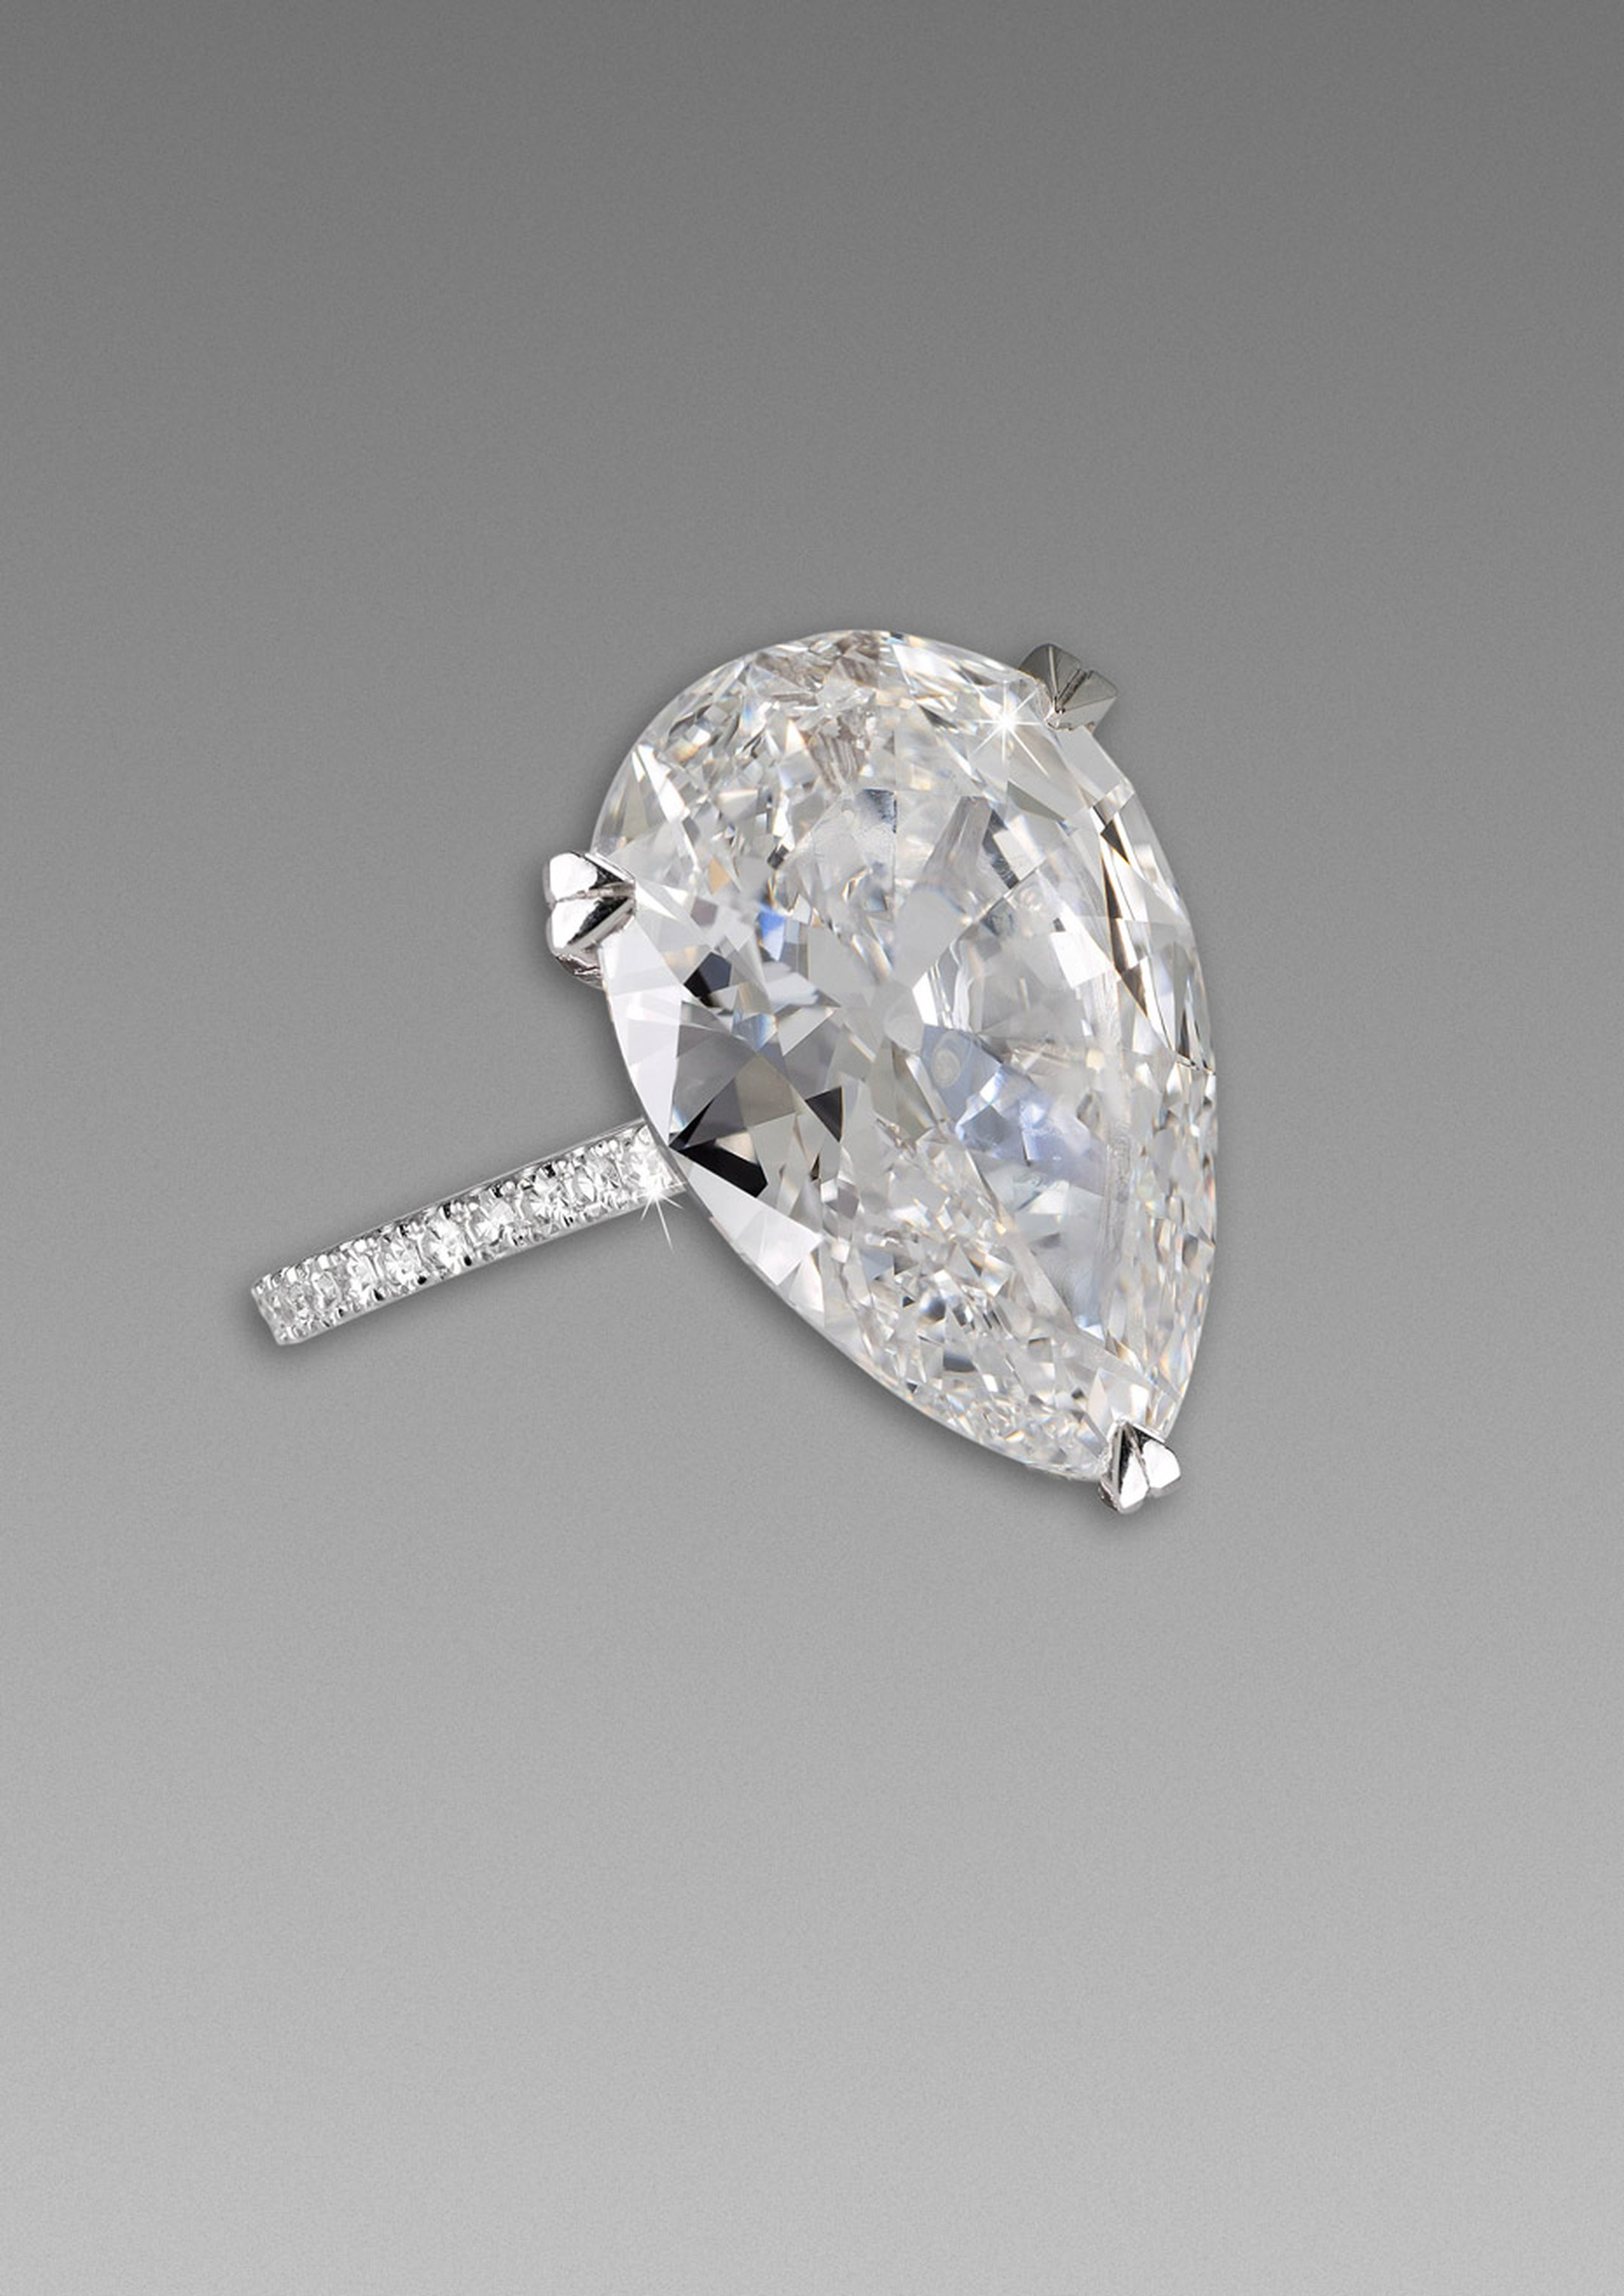 David Morris 8.59ct pear-cut engagement ring with a pavé diamond band.